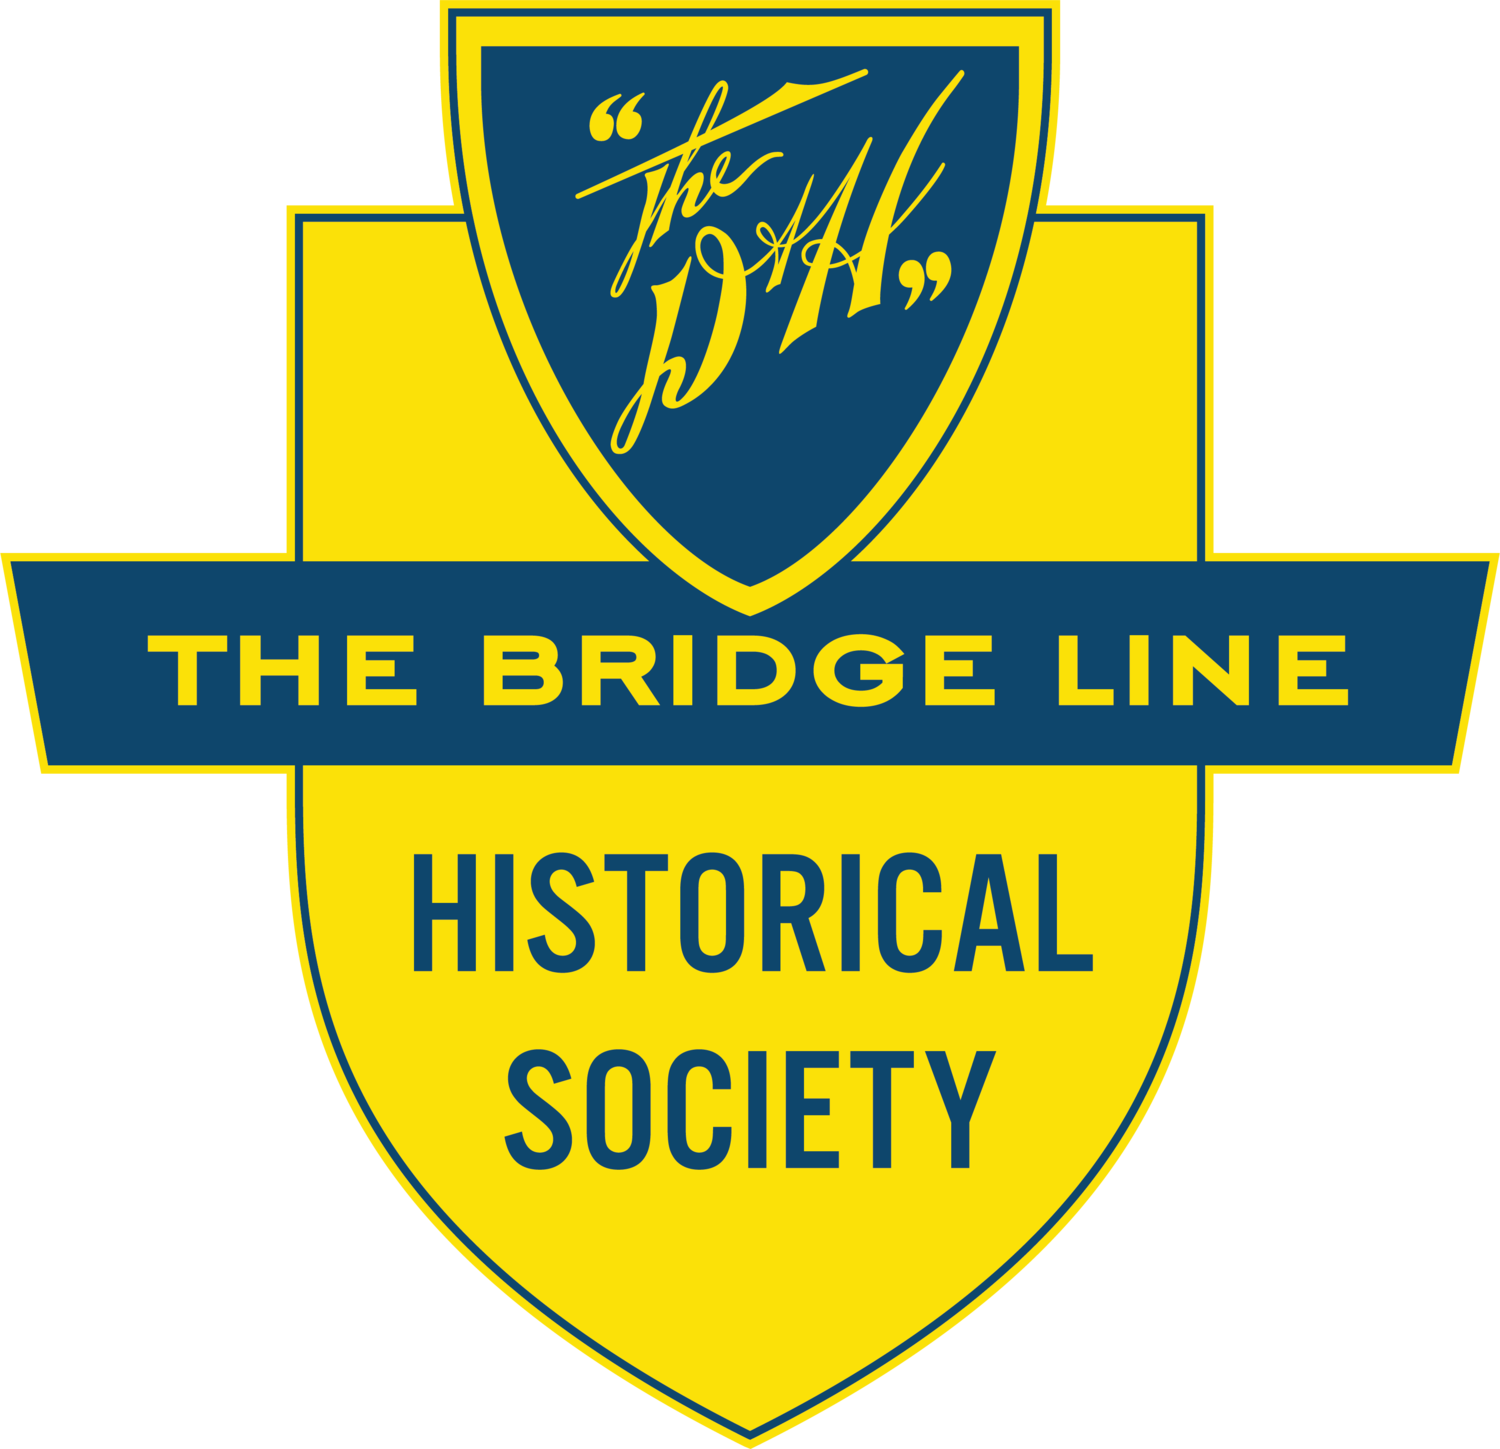 Bridge Line Historical Society